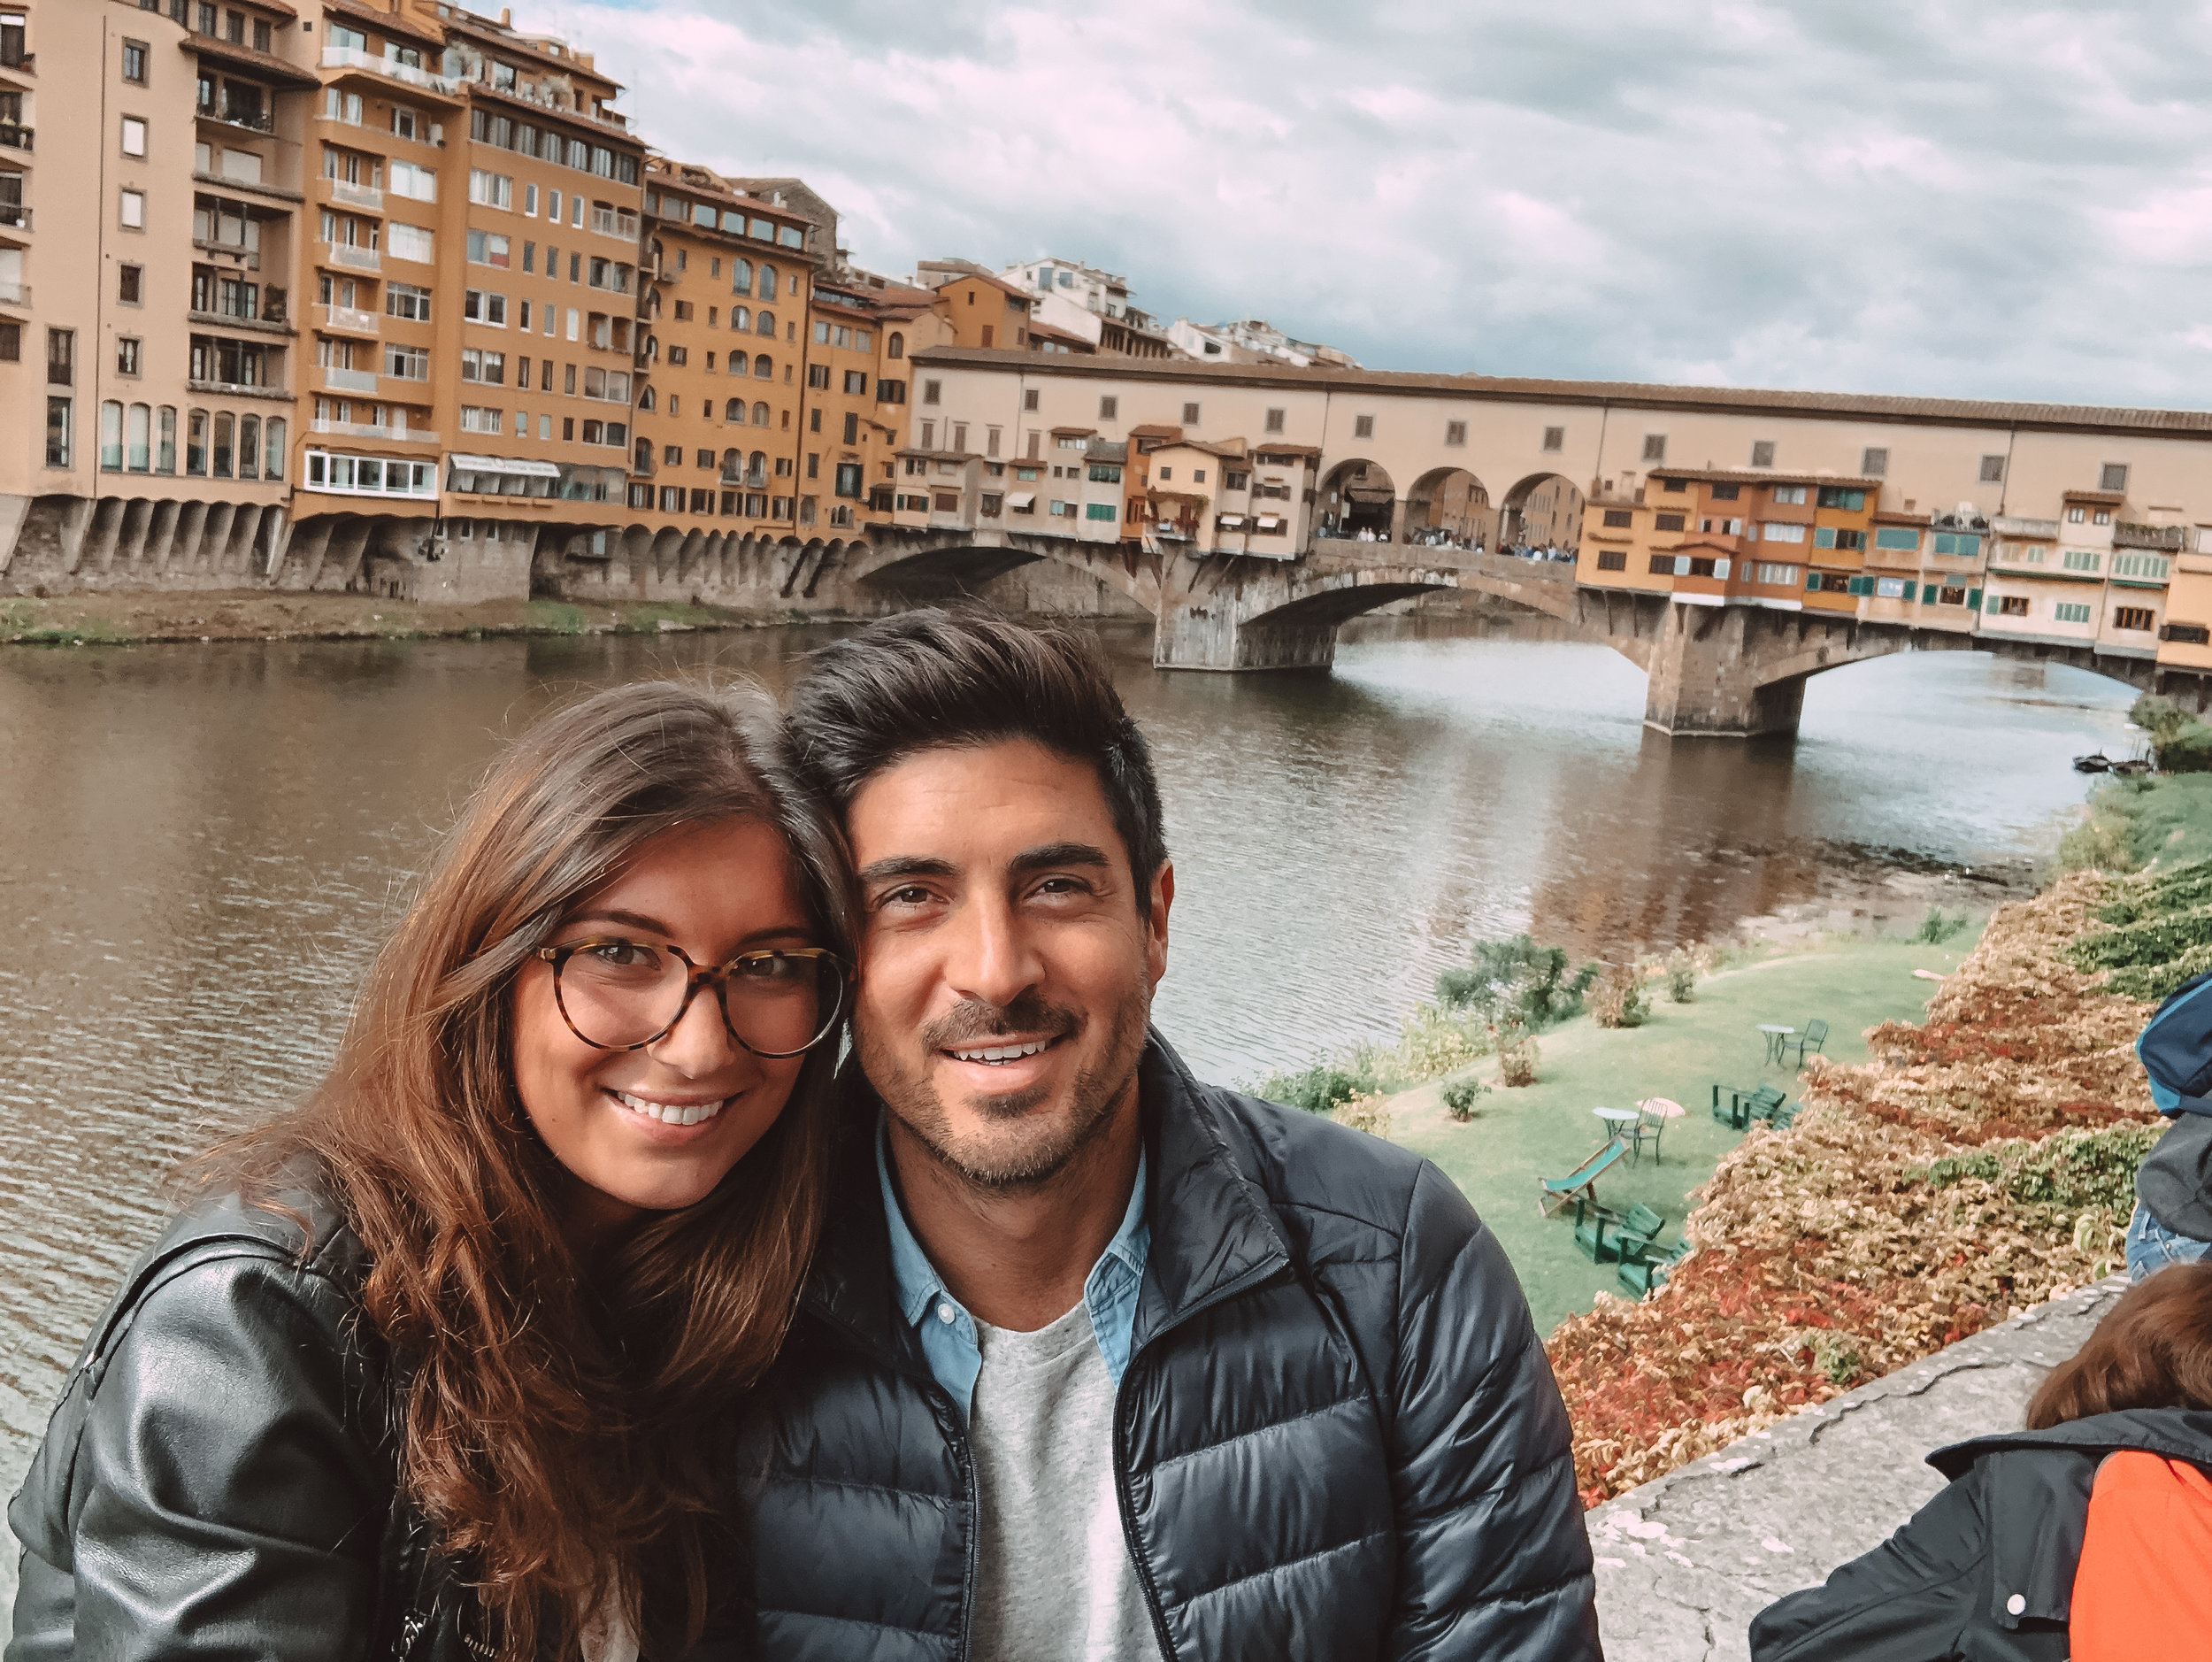 visiter-florence-en-amoureux-the-cheerfulist